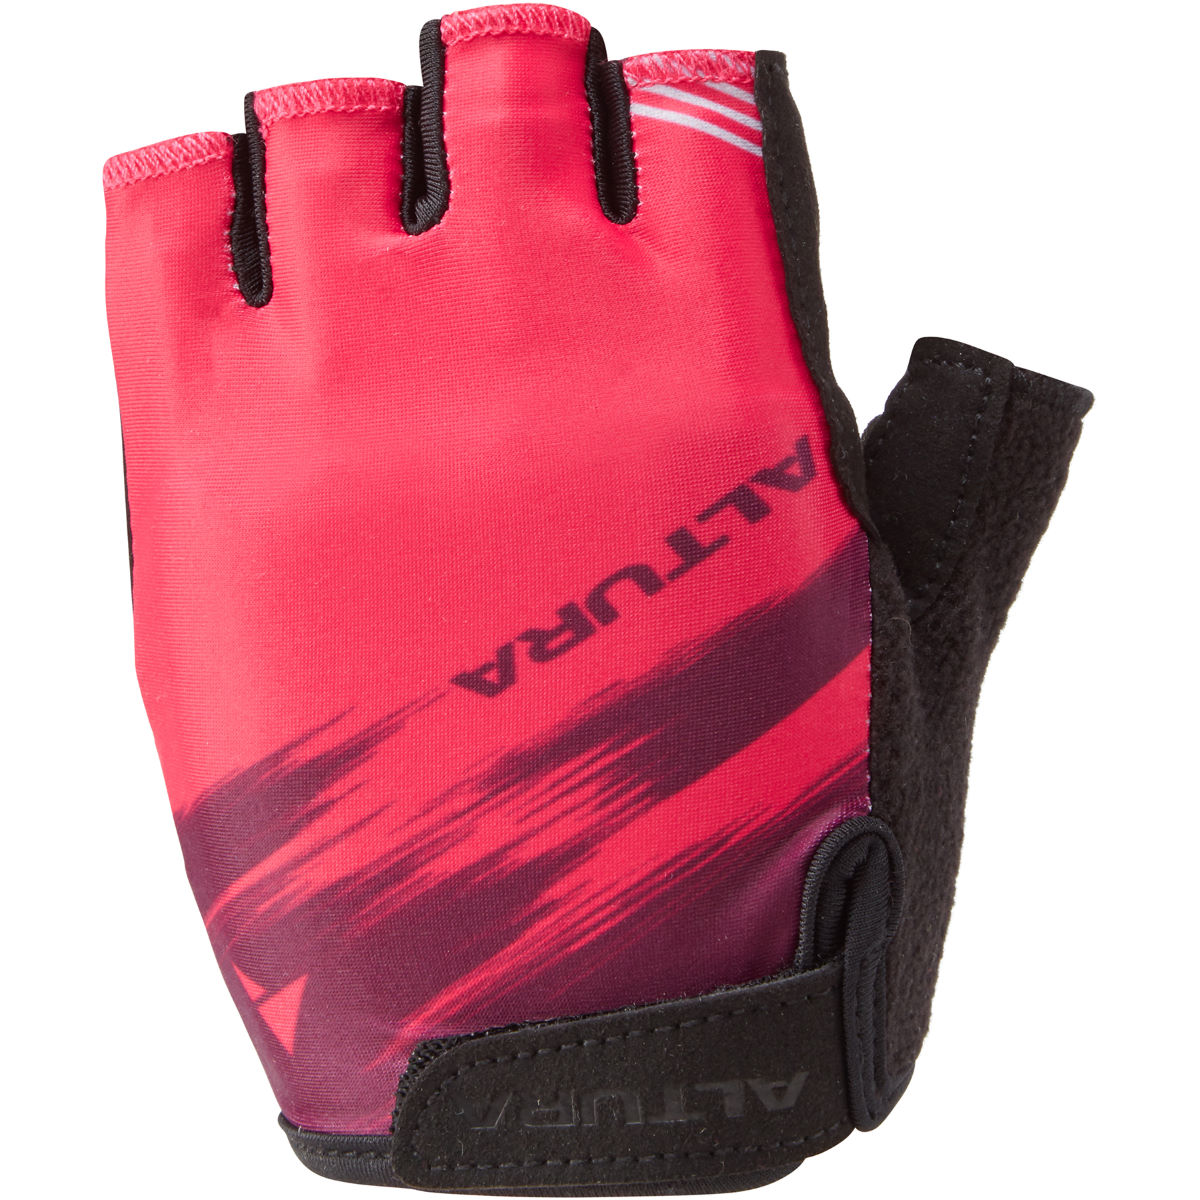 Altura Kids Airstream Cycling Gloves - S Pink  Gloves